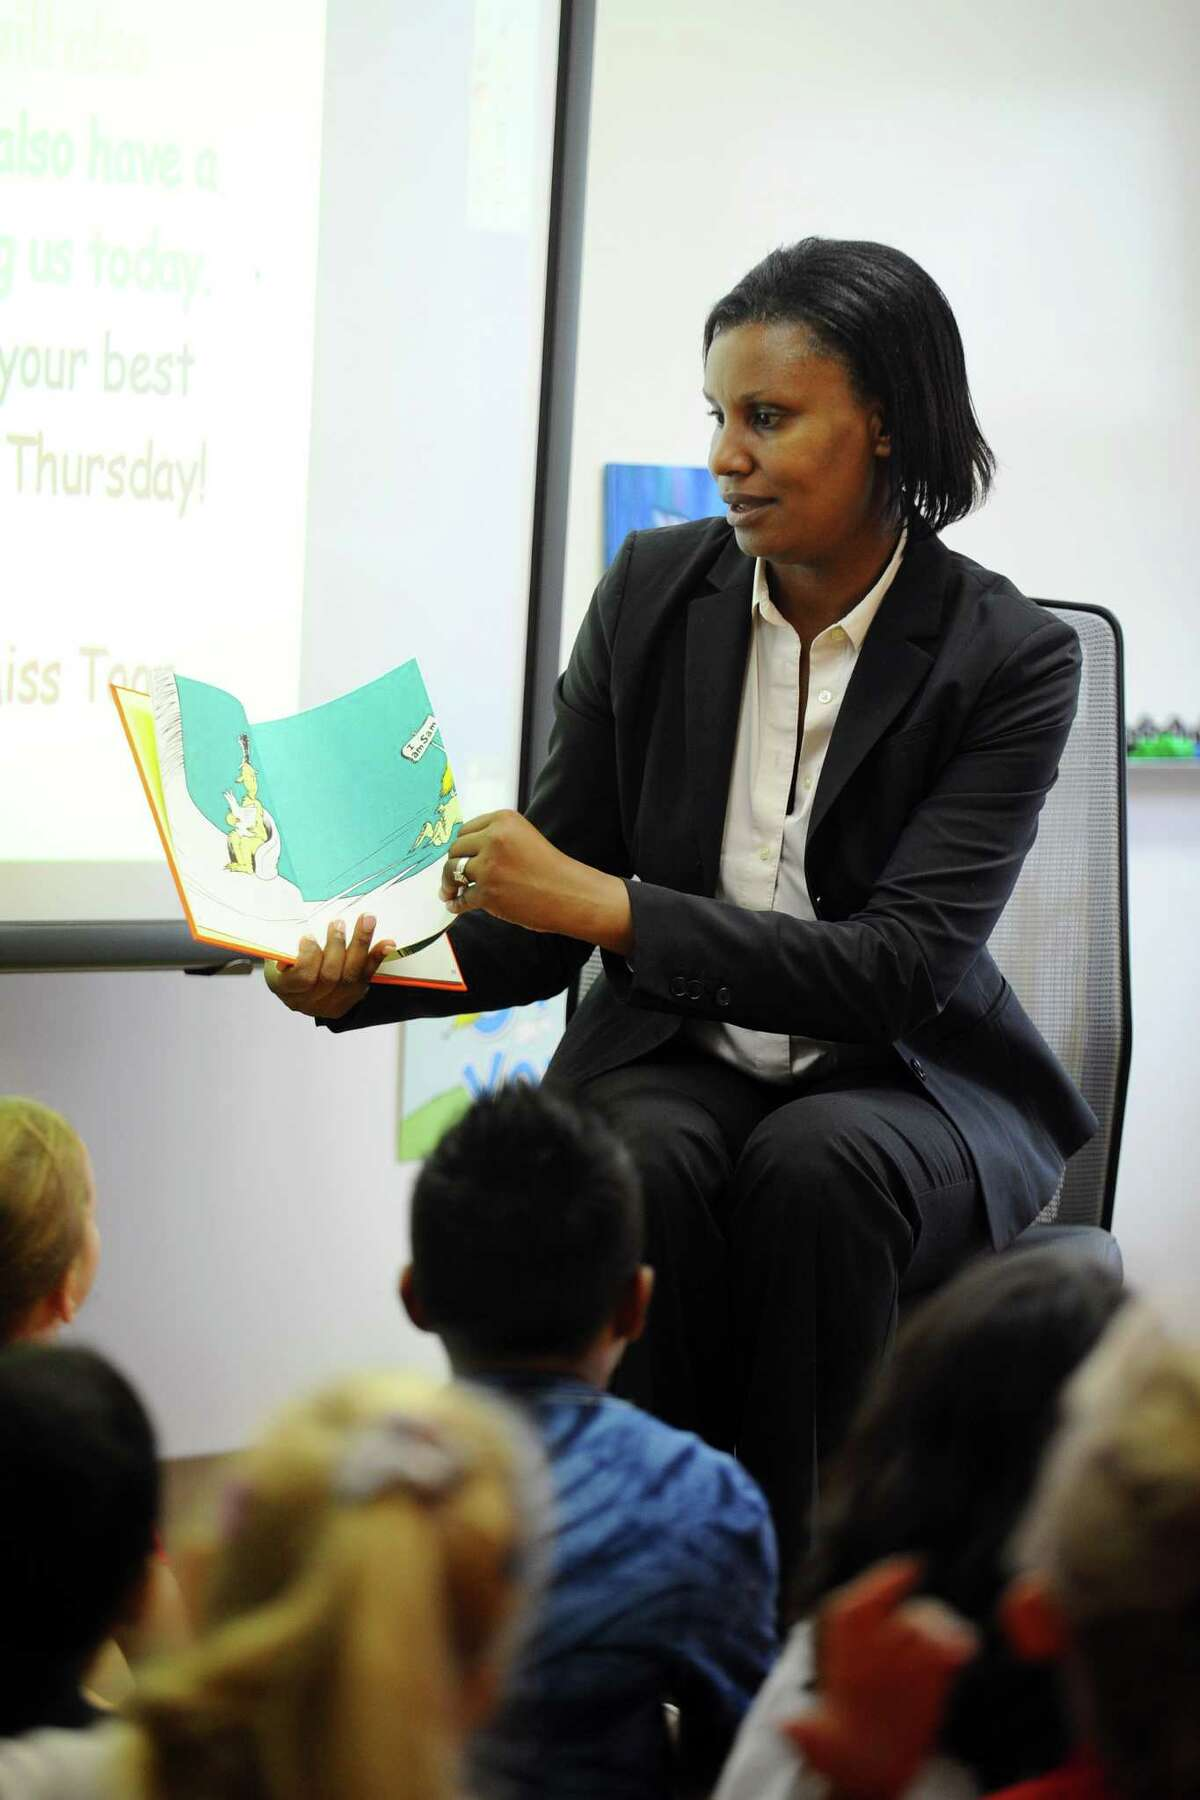 FILE - Assistant Superintendent Dr. Tamu Lucero reads a Dr. Seuss book to a first grade class at the New School, on Strawberry Hill Ave. in Stamford, Conn., on Thursday, September 1, 2016.